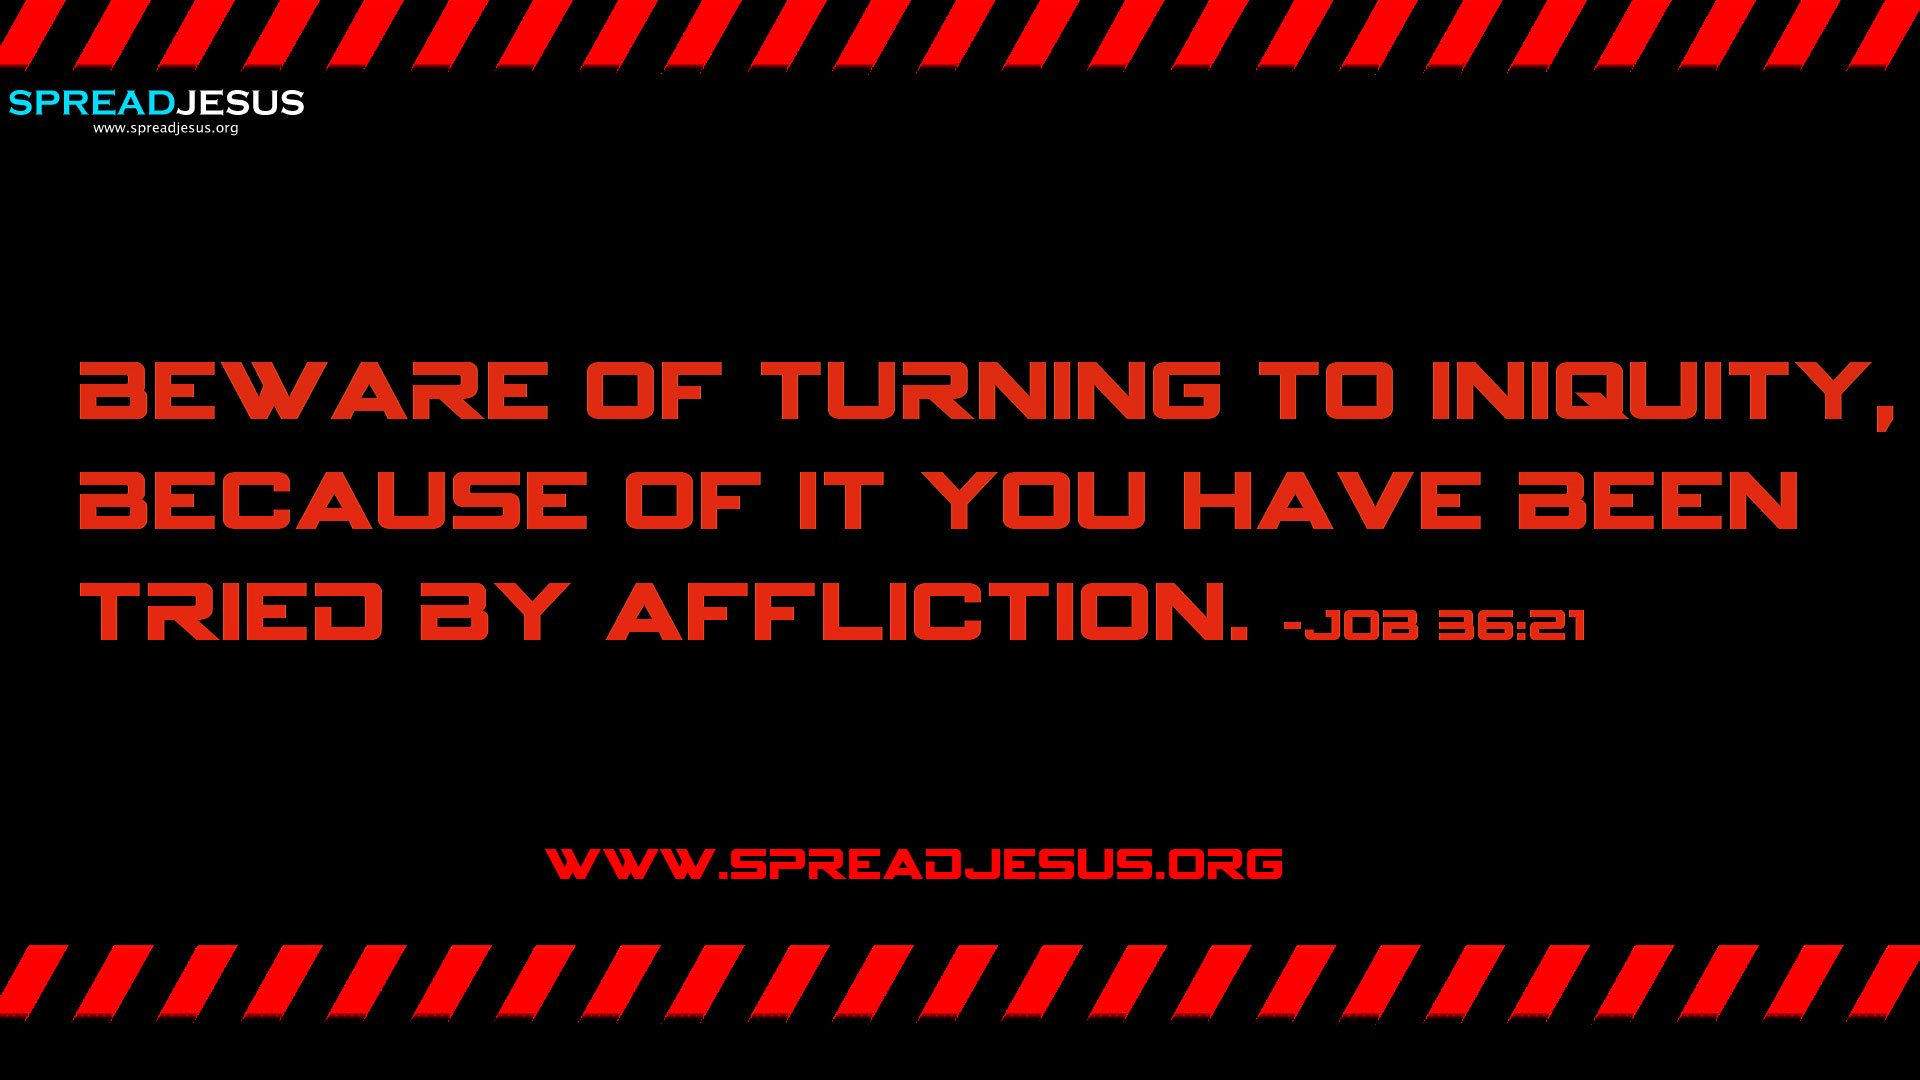 CHRISTIAN HD WALLPAPERS: HOLY BIBLE QUOTES : Job 36:21-Beware of turning to iniquity, because of it you have been tried by affliction.- Job 36:21